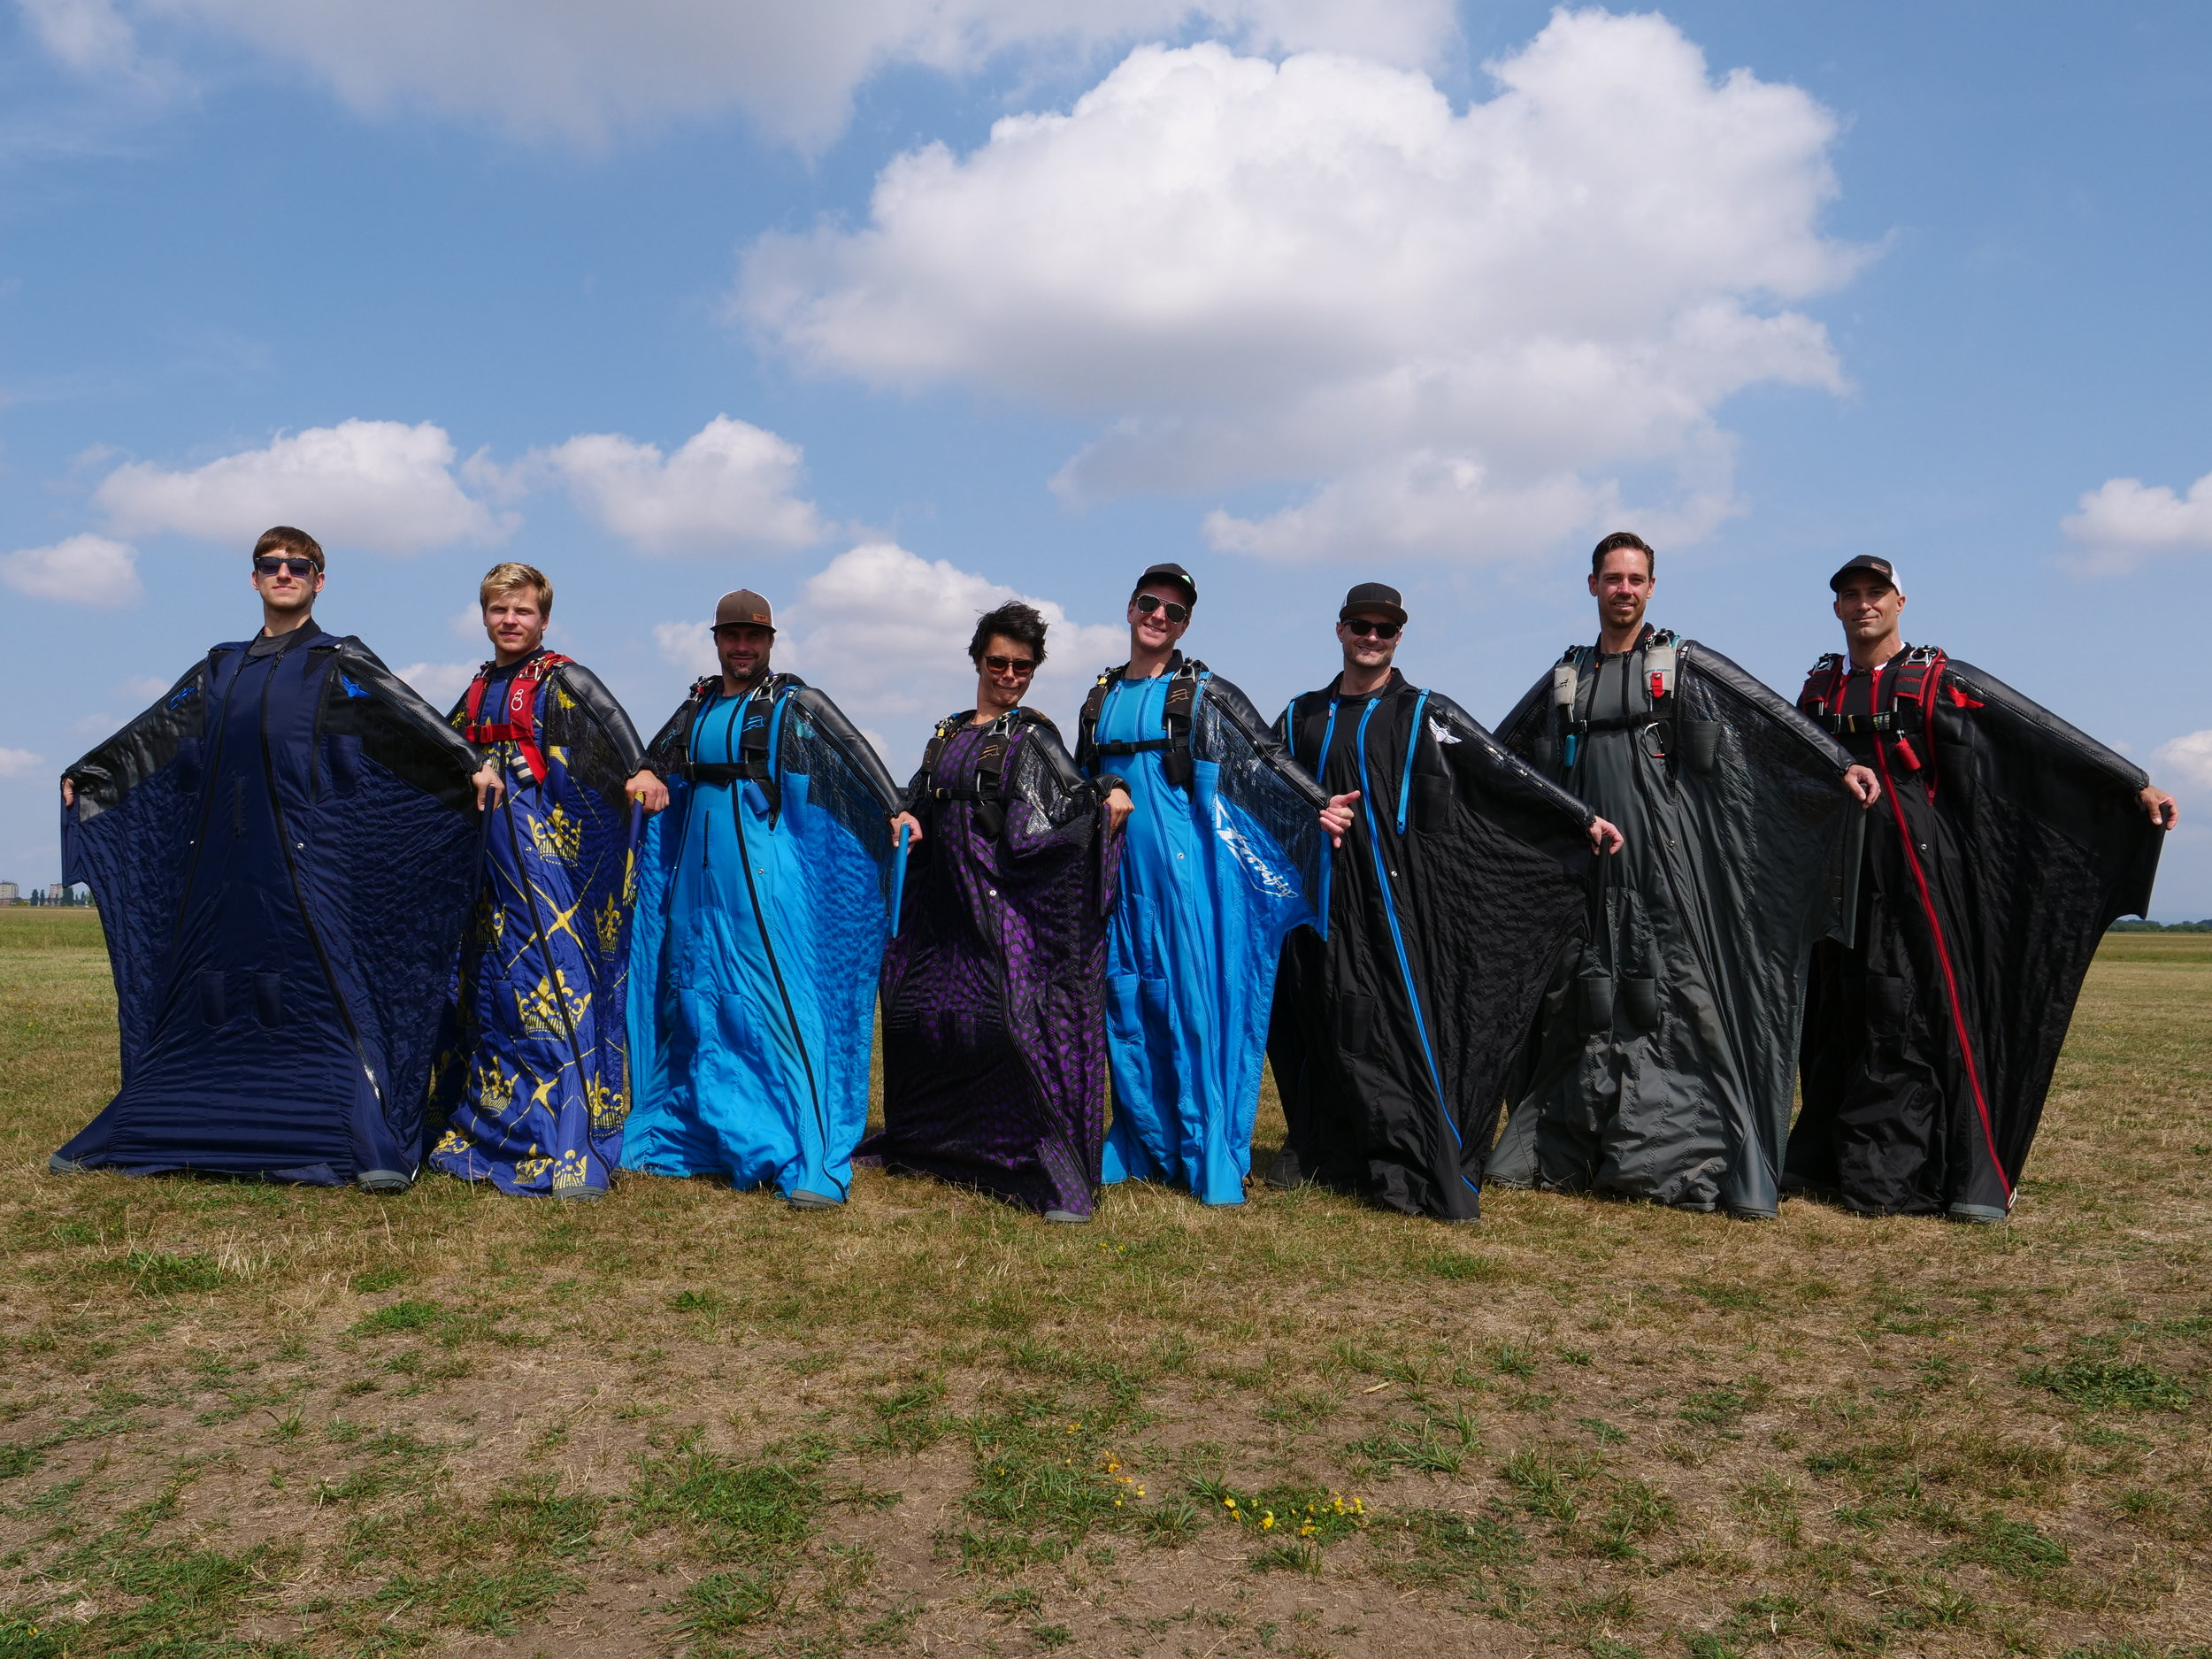 Eight of the top ten flew Squirrel Wingsuits  Pictured (L to R): Alexey Galda, Ola  Johansson, Luke Rogers, Amber Forte, Espen Fadnes, Joe Ridler, Aleksei Shatilov, Chris Geiler.